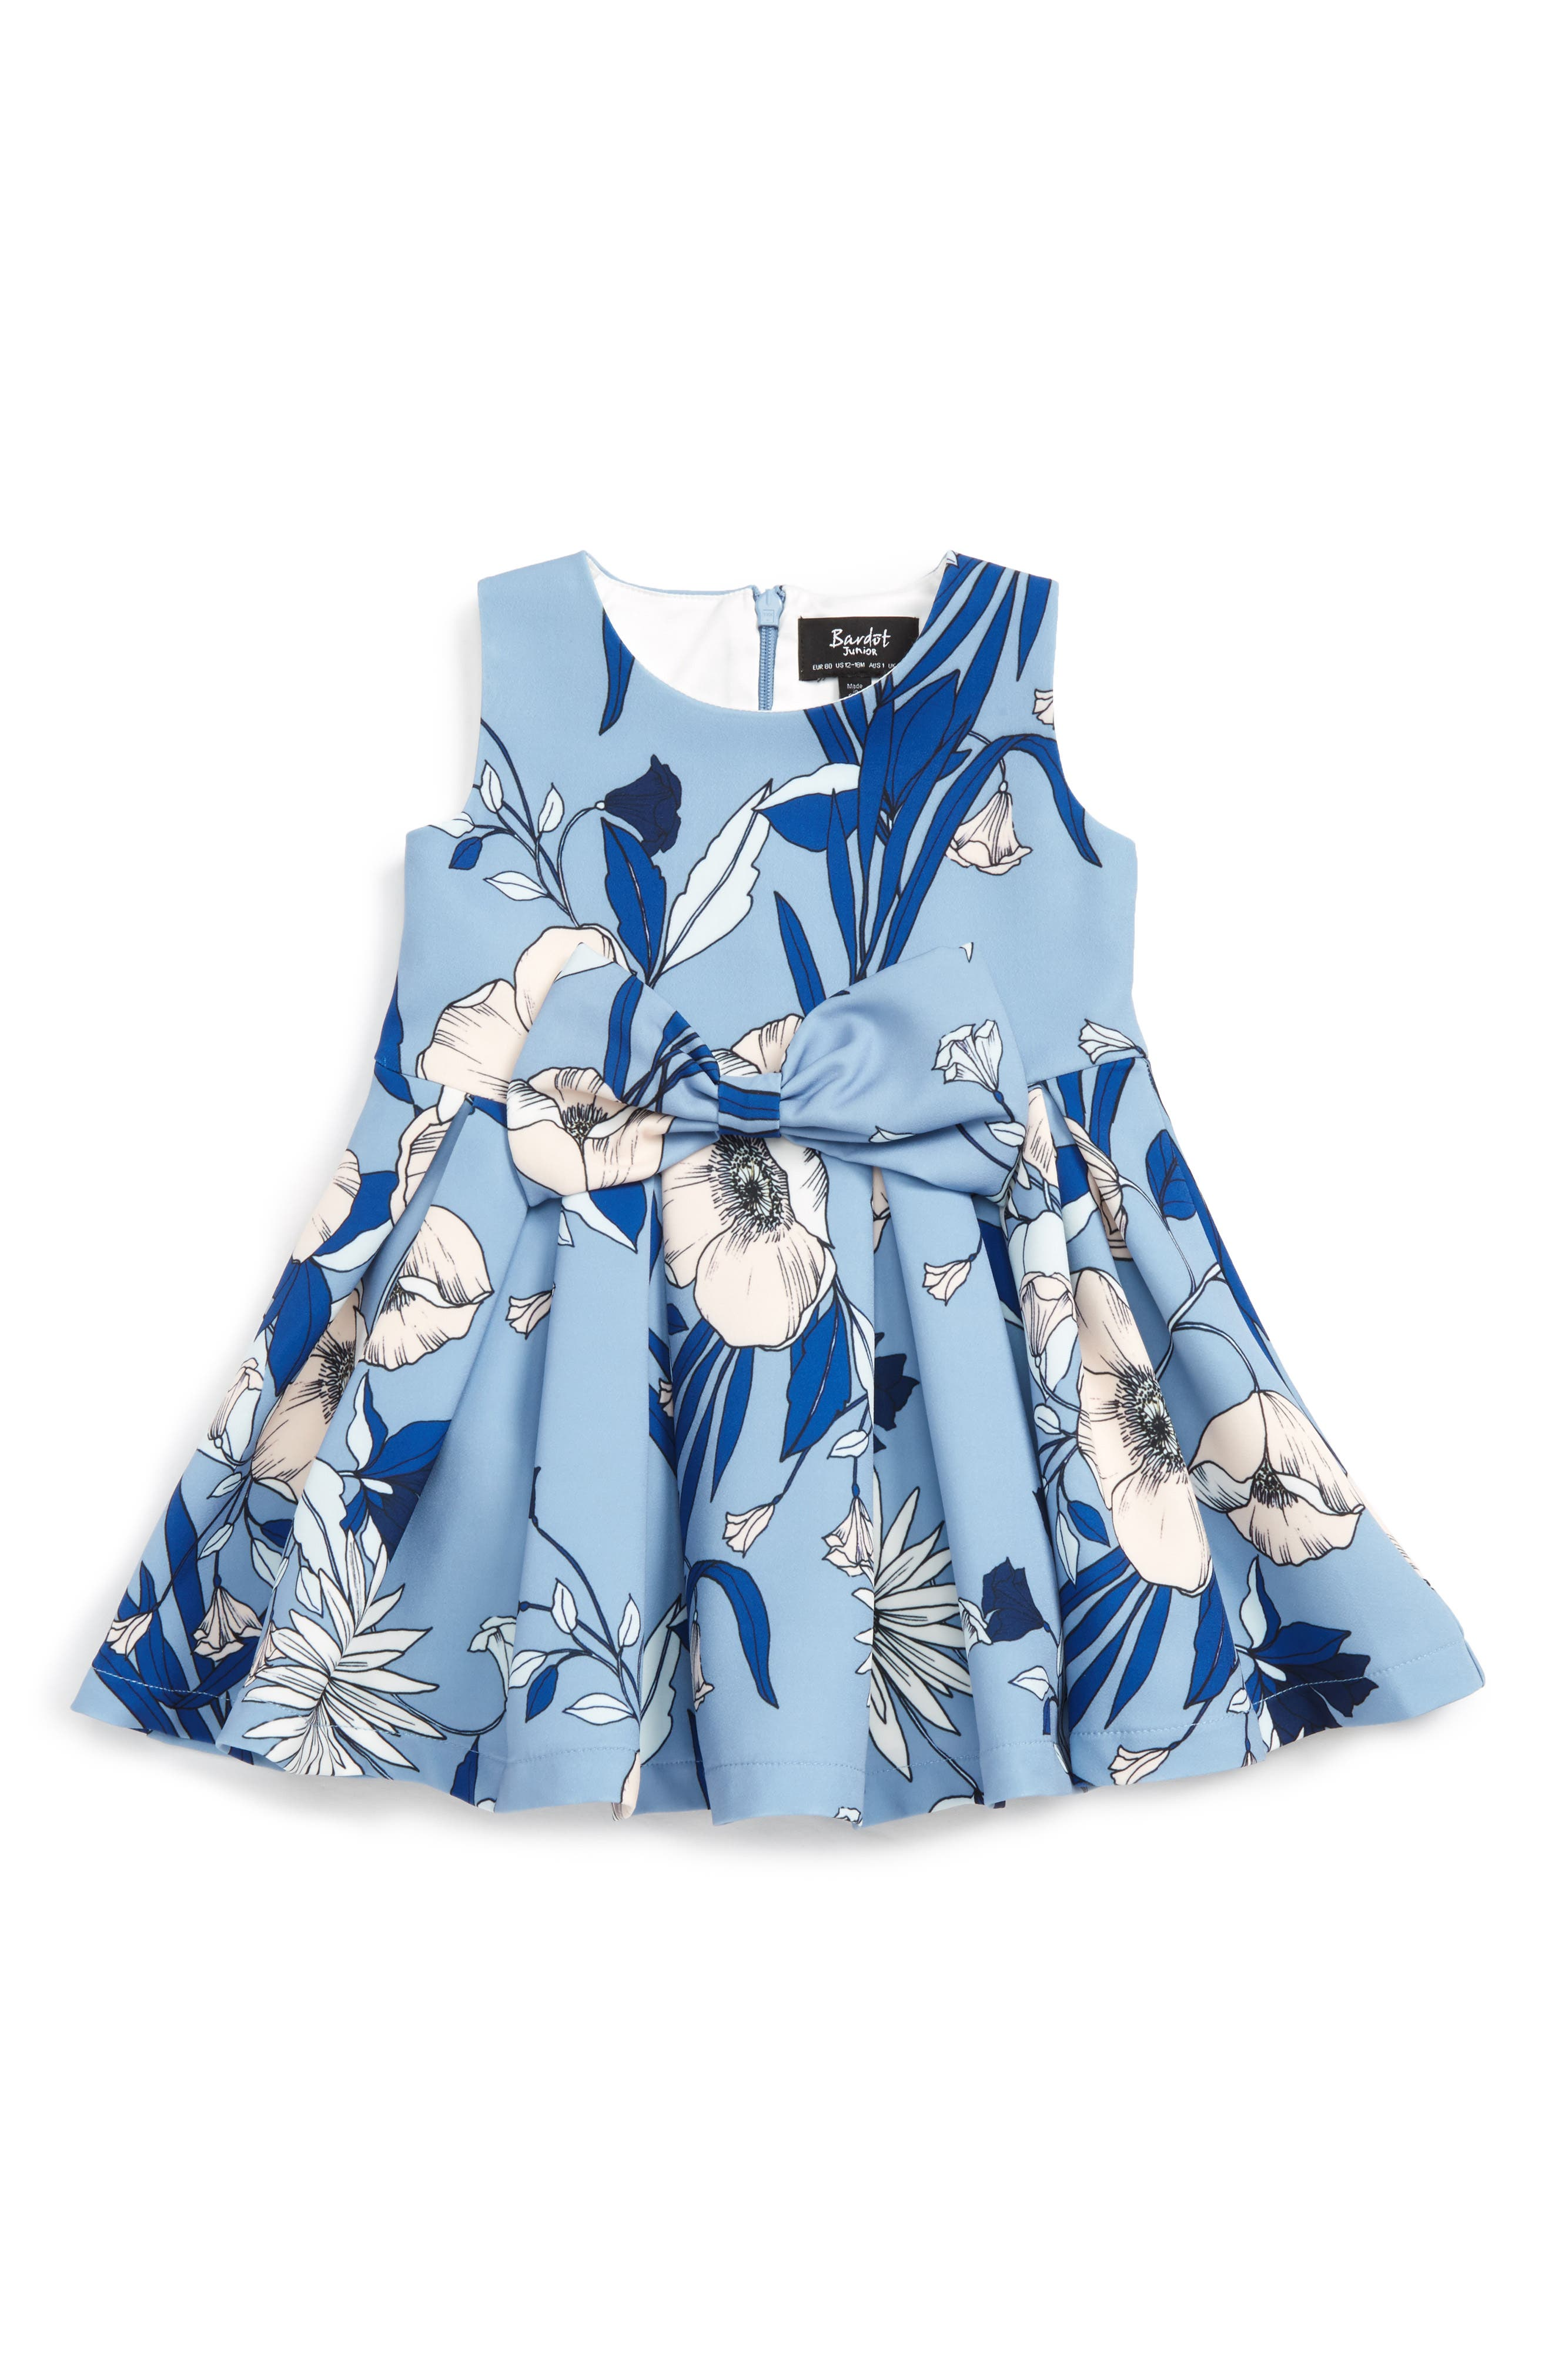 BARDOT JUNIOR Maia Floral Bow Dress